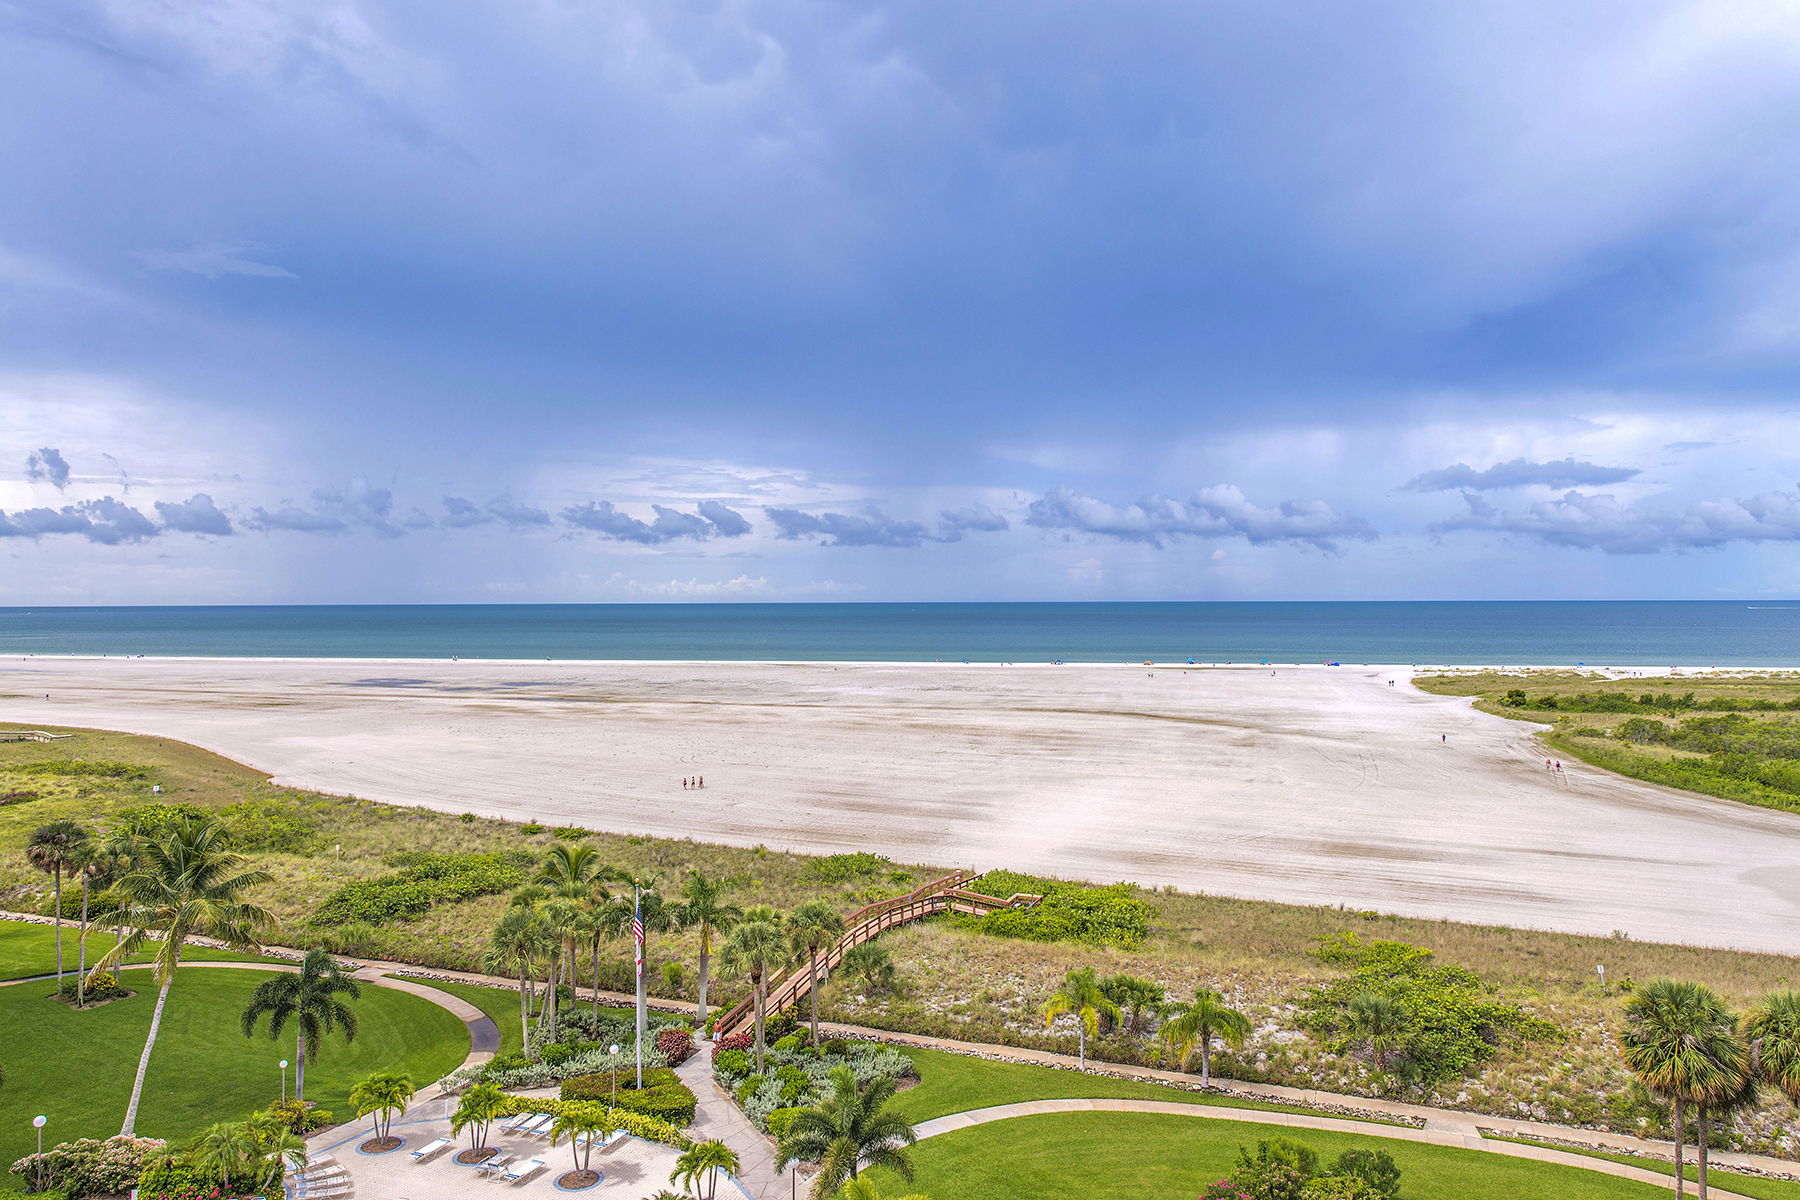 Condomínio para Venda às MARCO ISLAND - SOUTH SEAS TOWER 3 320 Seaview Ct 2-905 Marco Island, Florida 34145 Estados Unidos